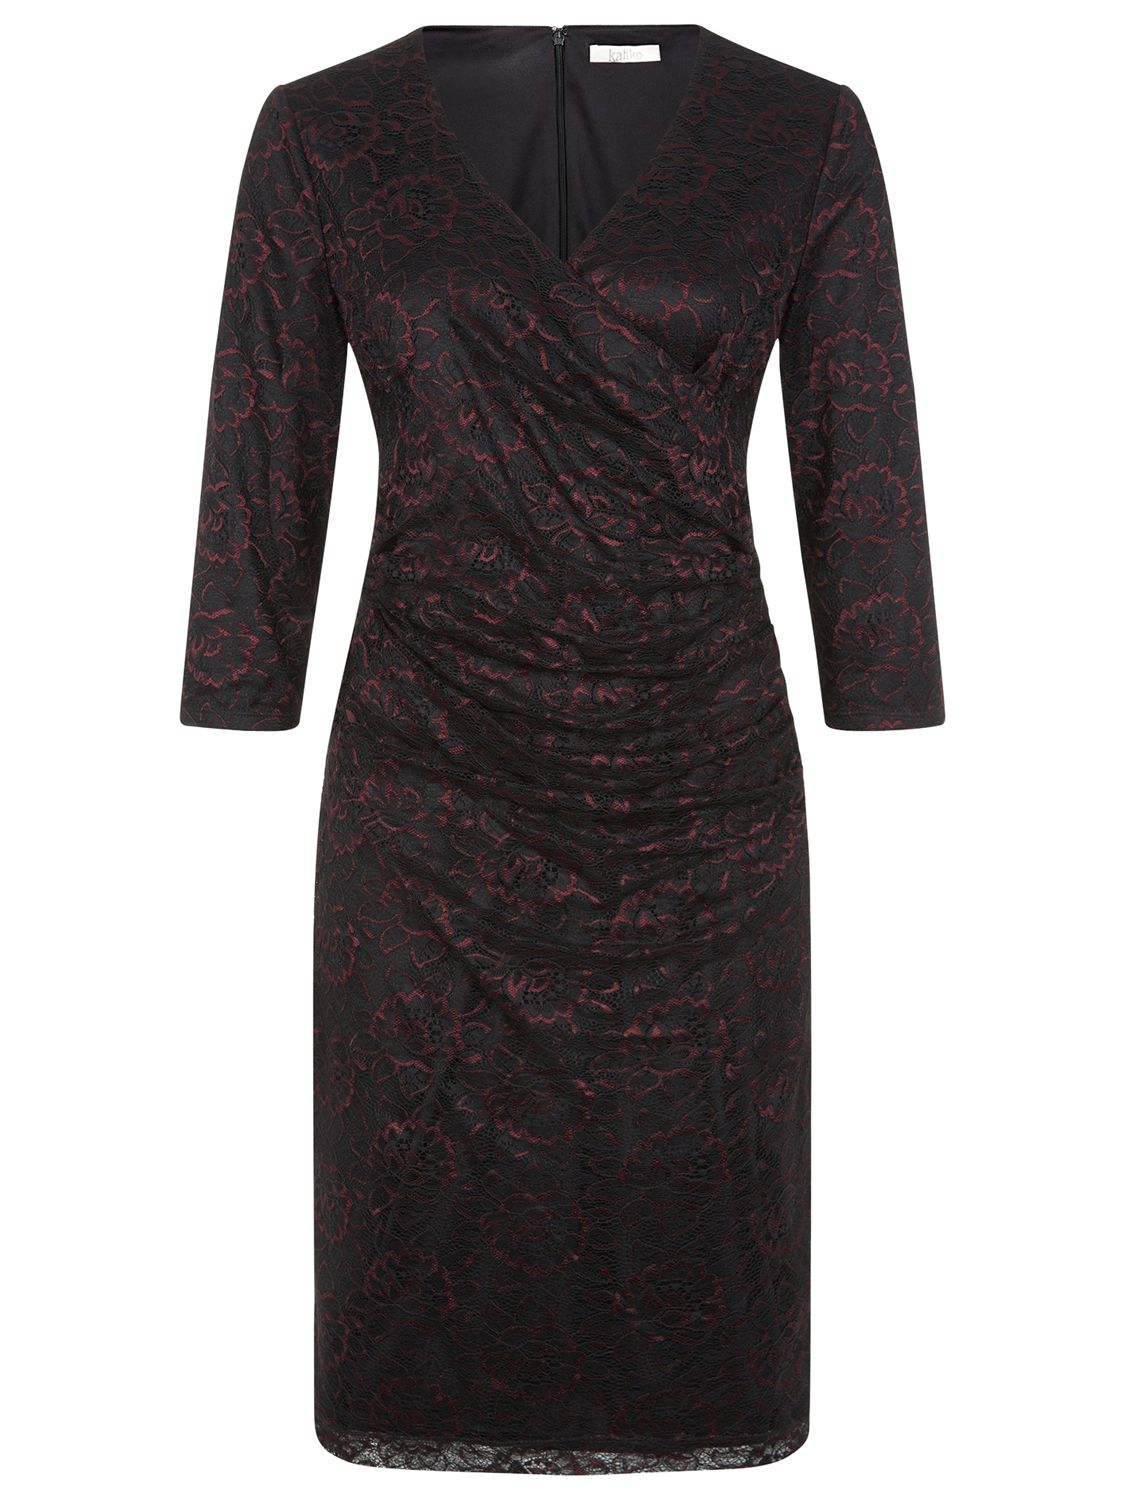 kaliko v-neck lace dress black/purple, kaliko, v-neck, lace, dress, black/purple, 18|8|16|12|14|10, clearance, womenswear offers, womens dresses offers, special offers, 20% off selected kaliko, women, plus size, inactive womenswear, new reductions, womens dresses, 1775109